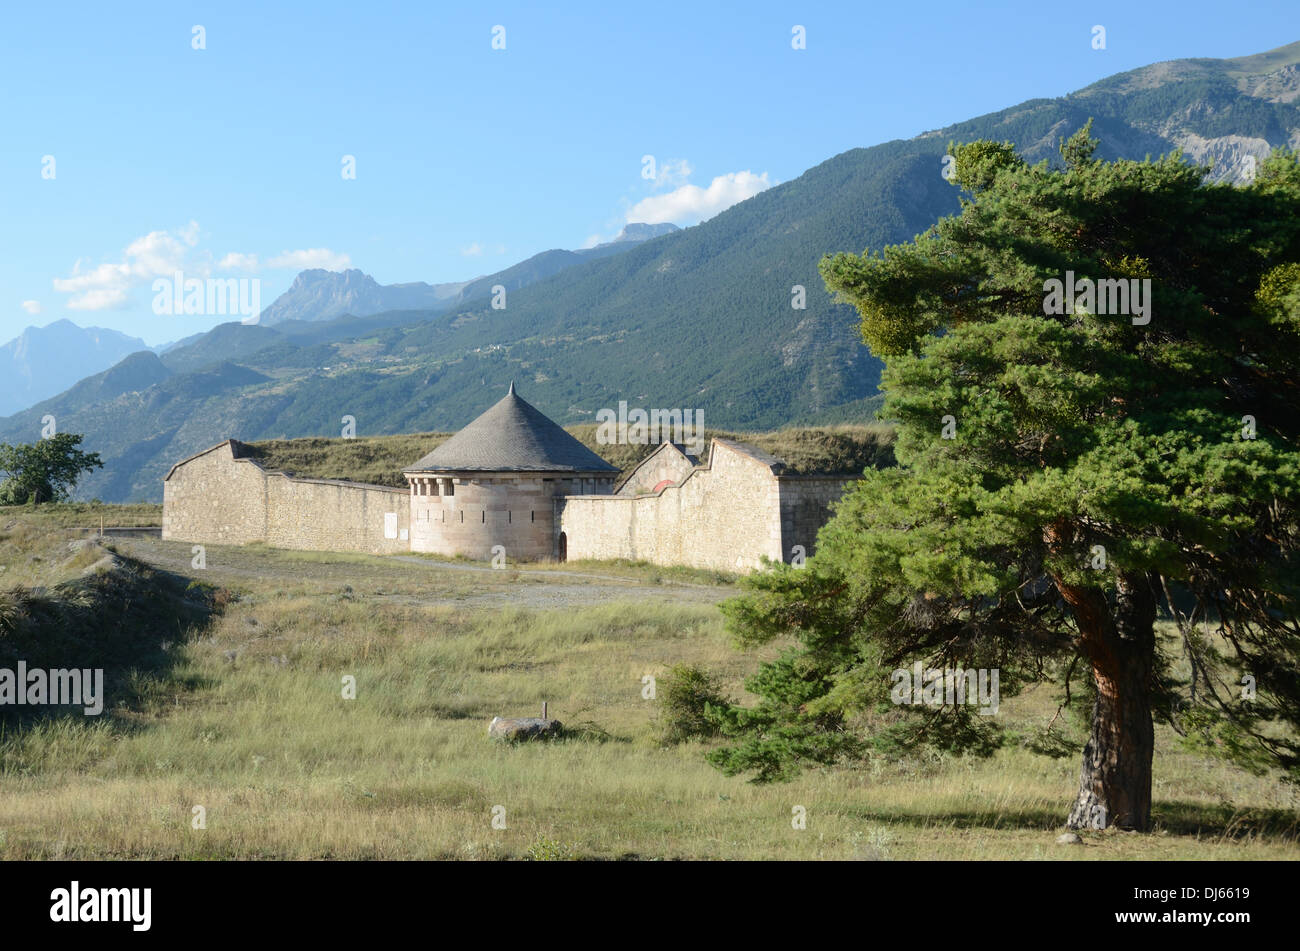 Vauban Fortifications Walled Town and Look-out Tower Mont-Dauphin Hautes-Alpes France - Stock Image